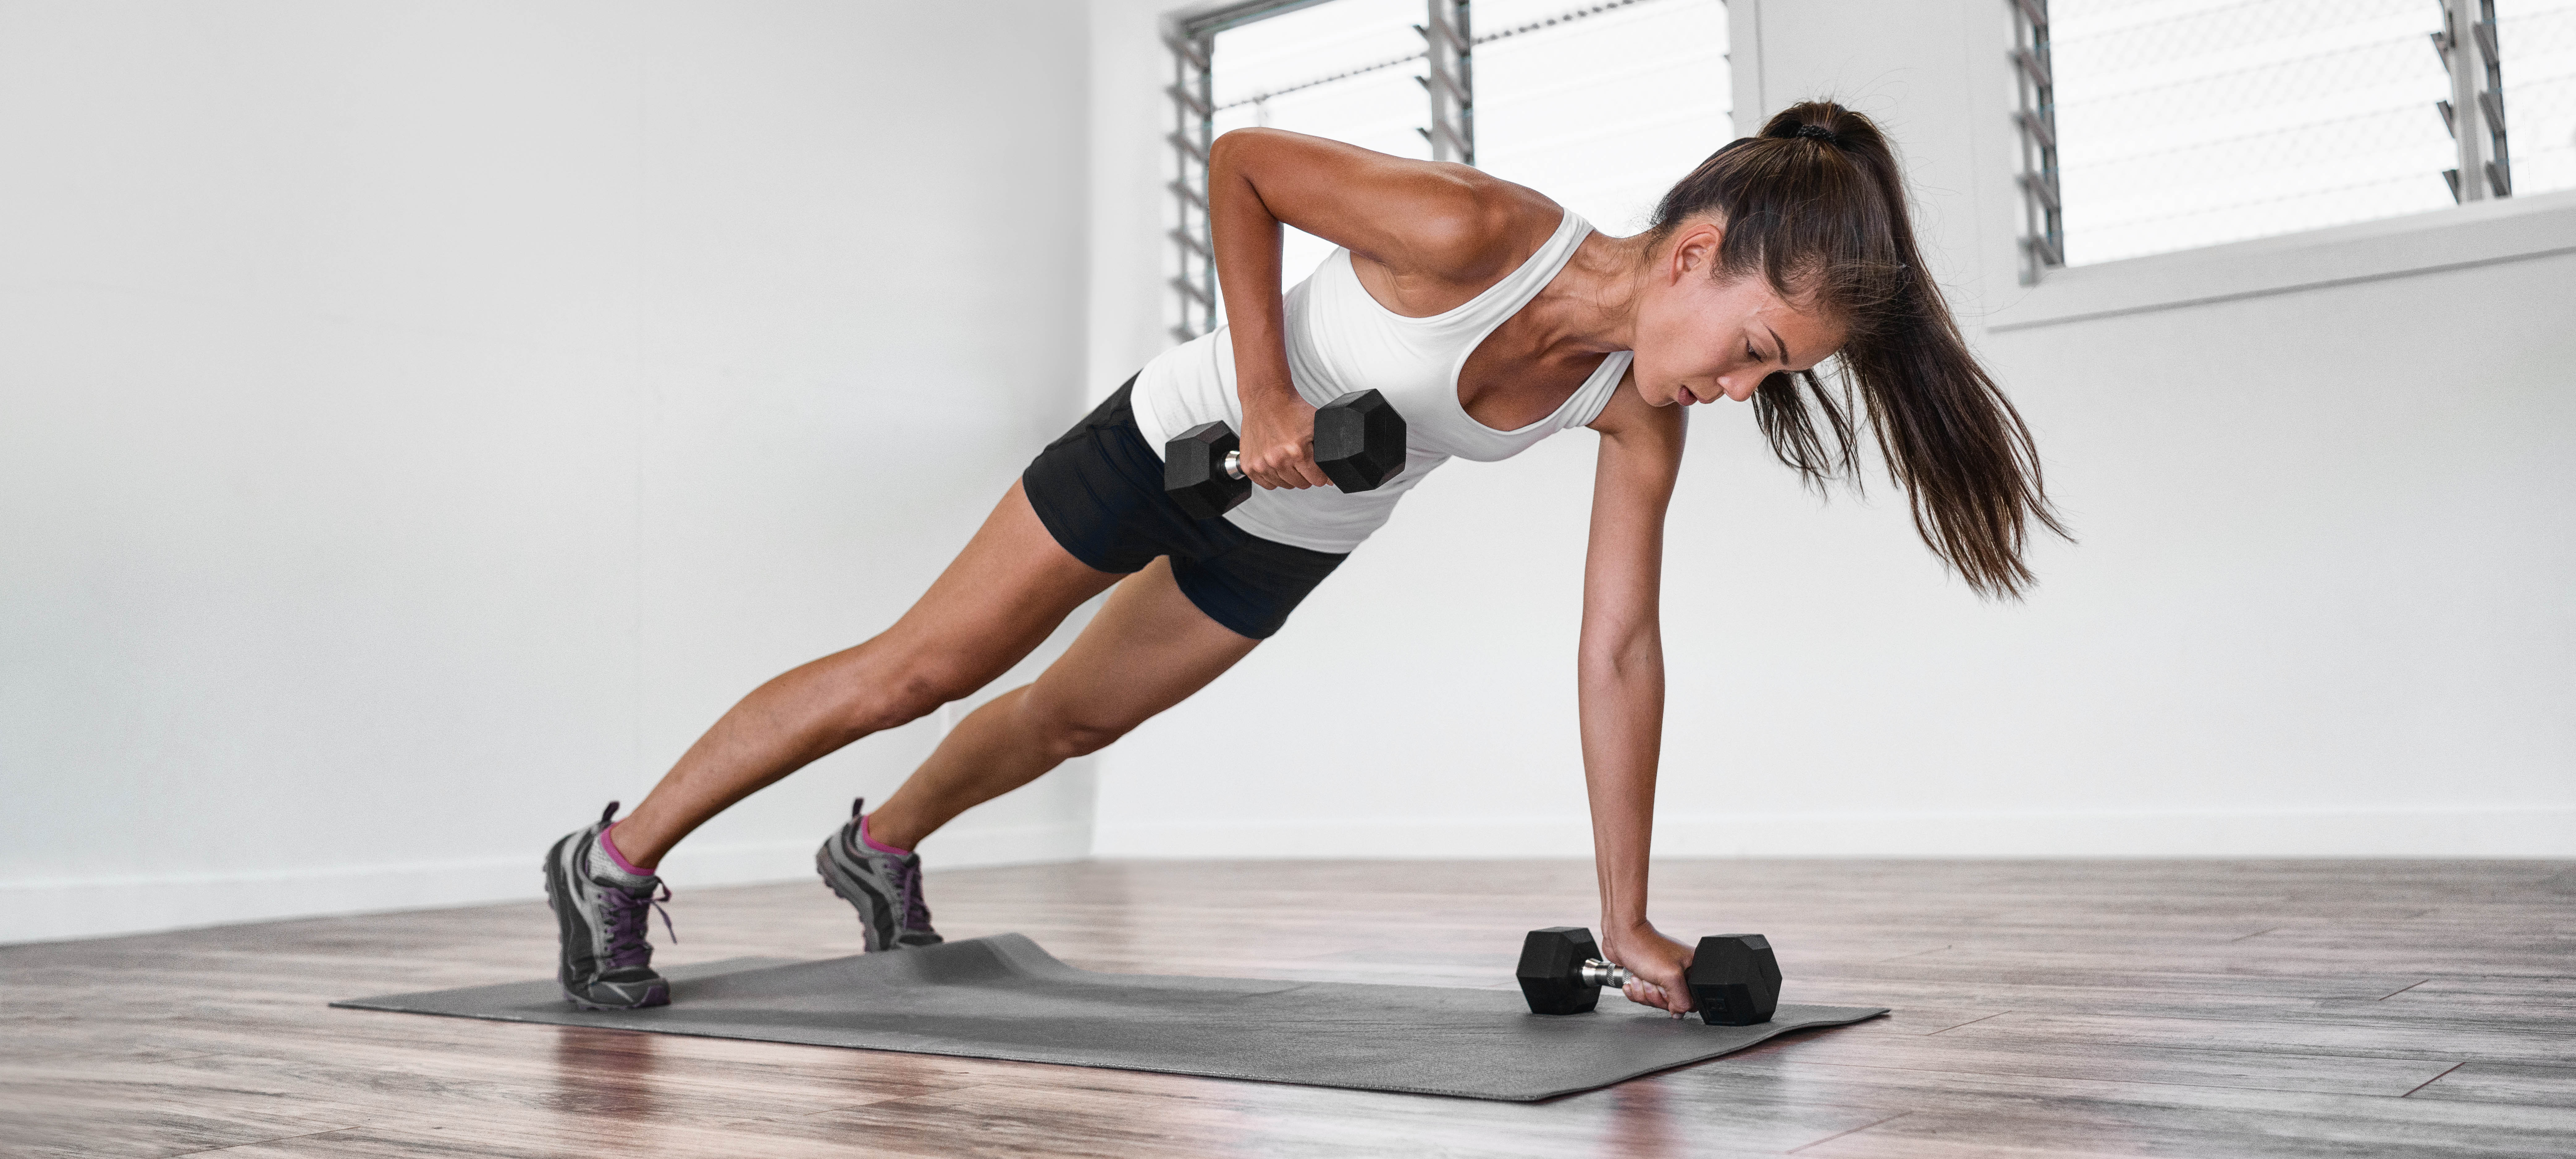 april-22-dumbbell-row